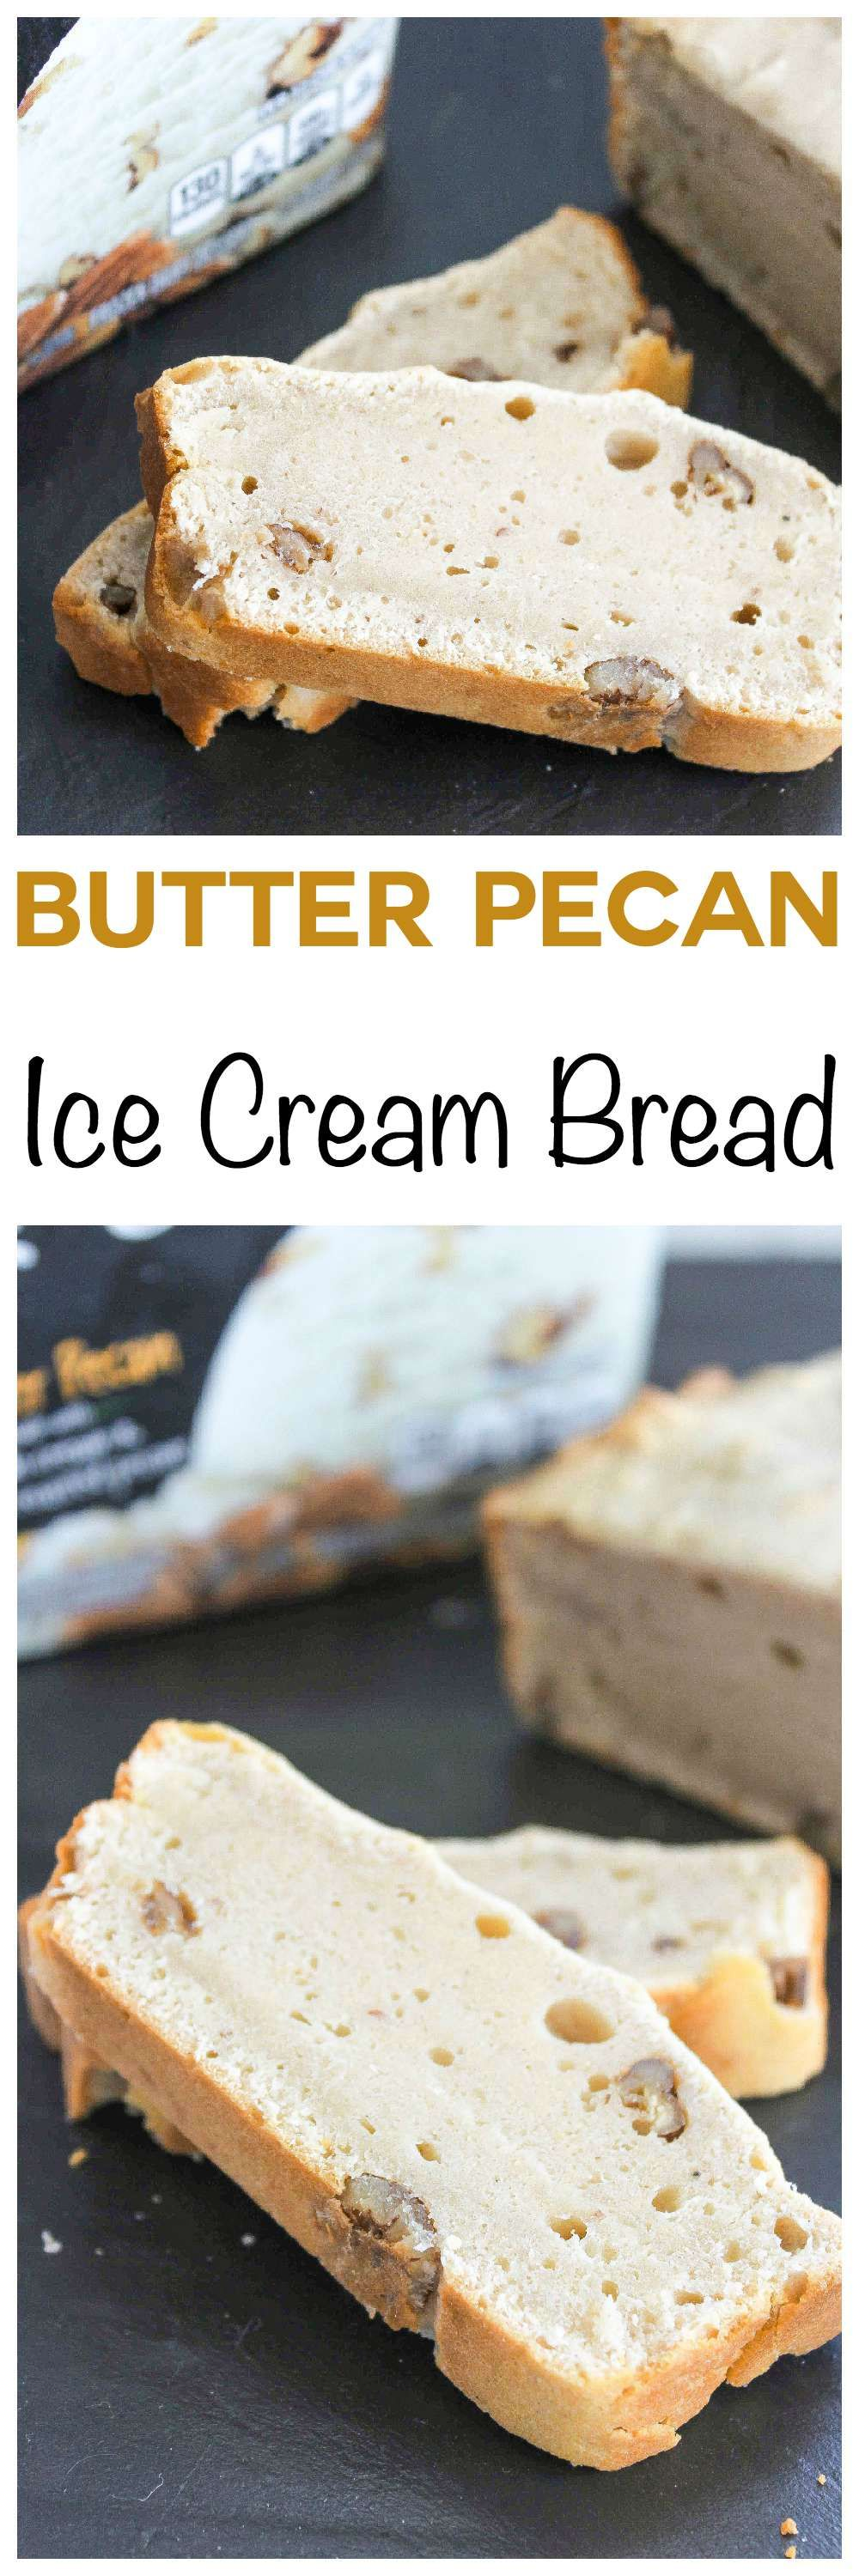 Easy Butter Pecan Ice Cream Bread: Moist and tender bread that tastes just like your favorite ice cream flavor! One of the easiest recipes on the planet! Can you guess the 2 common ingredients?!